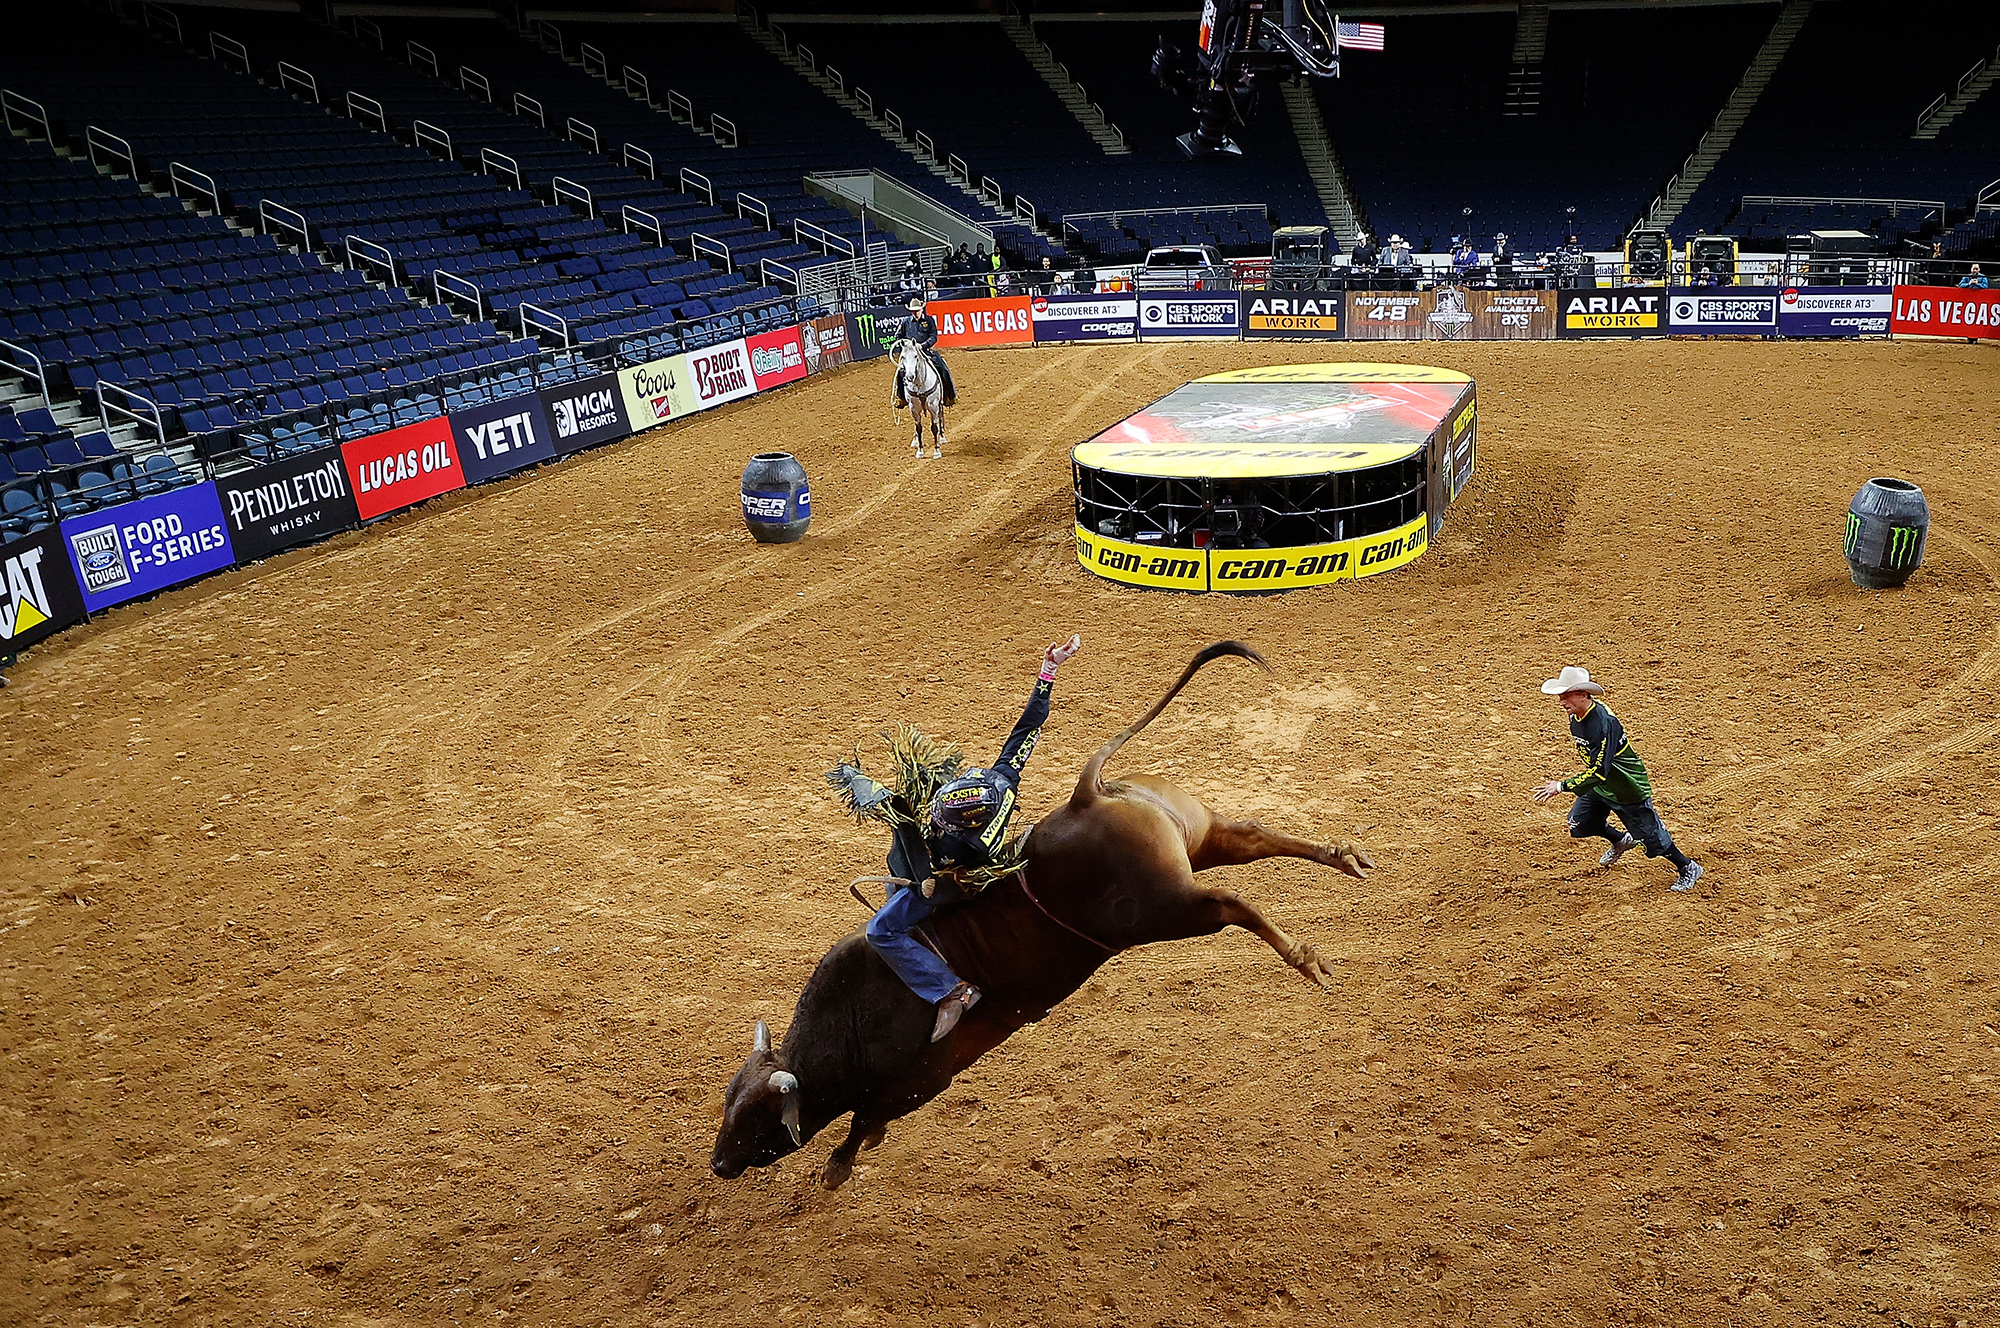 PBR Unleash The Beast - Gwinnett InvitationalDULUTH, GEORGIA - MARCH 15: Dener Barbosa of Brazil rides Bullseye during round 3 on the second day of competition to win the PBR Unleash The Beast Gwinnett Invitational at Infinite Energy Center on March 15, 2020 in Duluth, Georgia.The competition is being held behind closed doors to the general public due to the worldwide spread of COVID-19. (Photo by Kevin C. Cox/Getty Images)